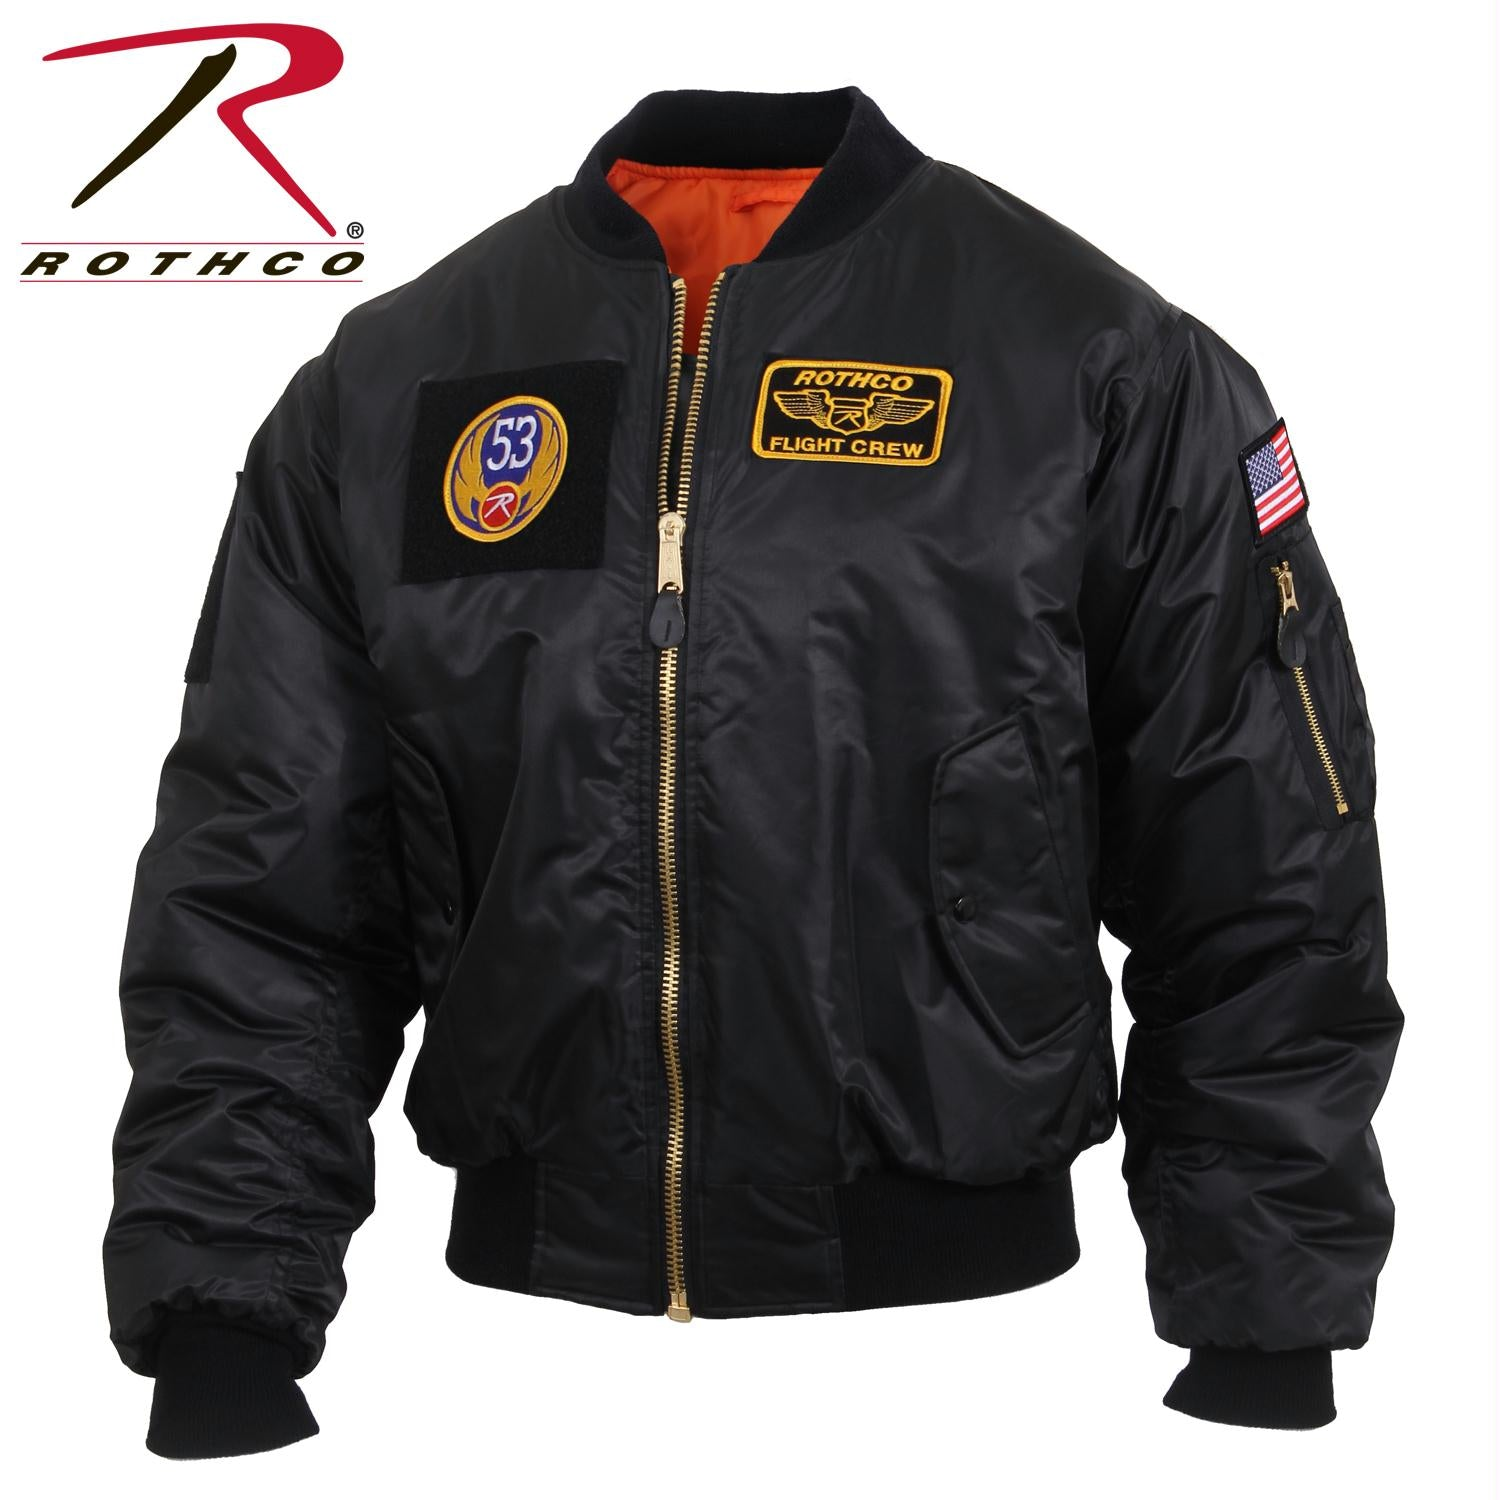 Rothco MA-1 Flight Jacket with Patches - Black / M